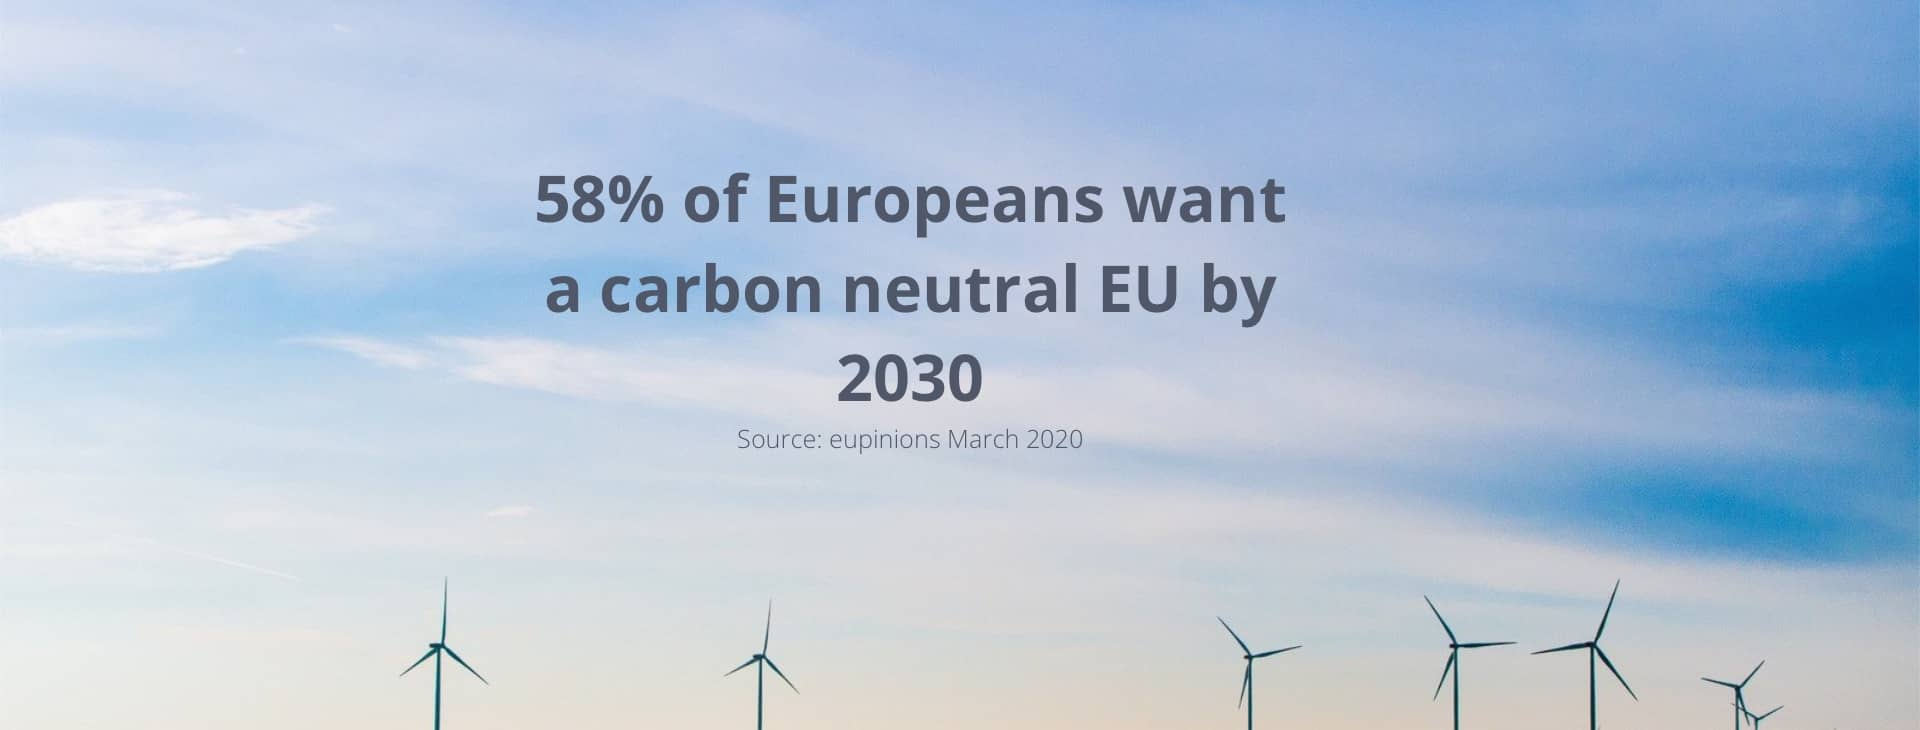 58% of Europeans want a carbon neutral EU by 2030 - Source: eupinions March 2020